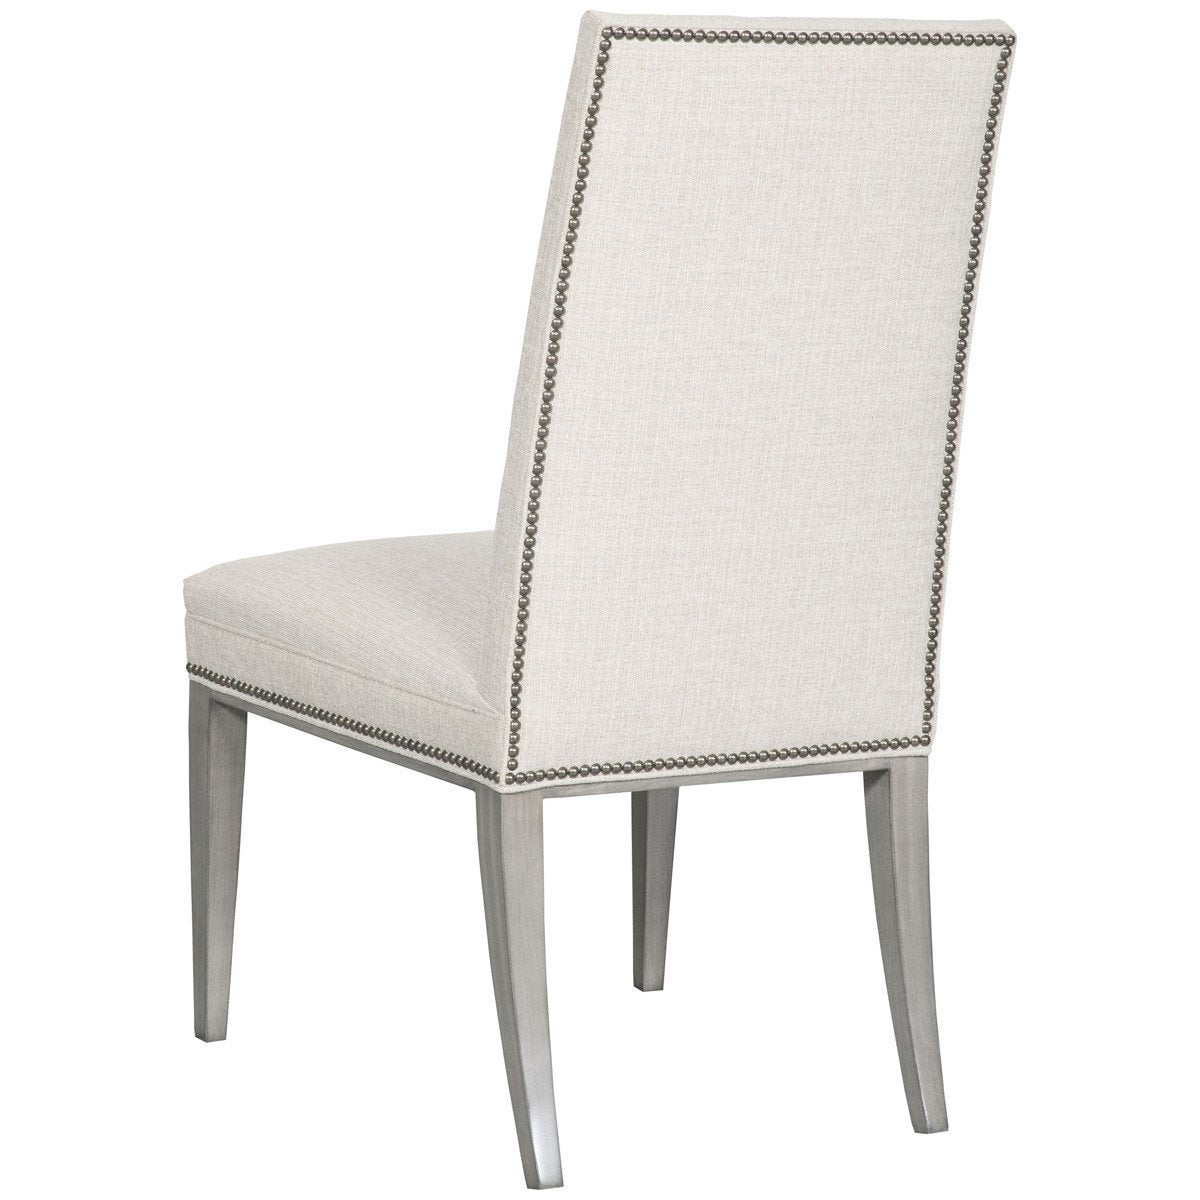 Vanguard Furniture Hanover Stocked Performance Dining Side Chair